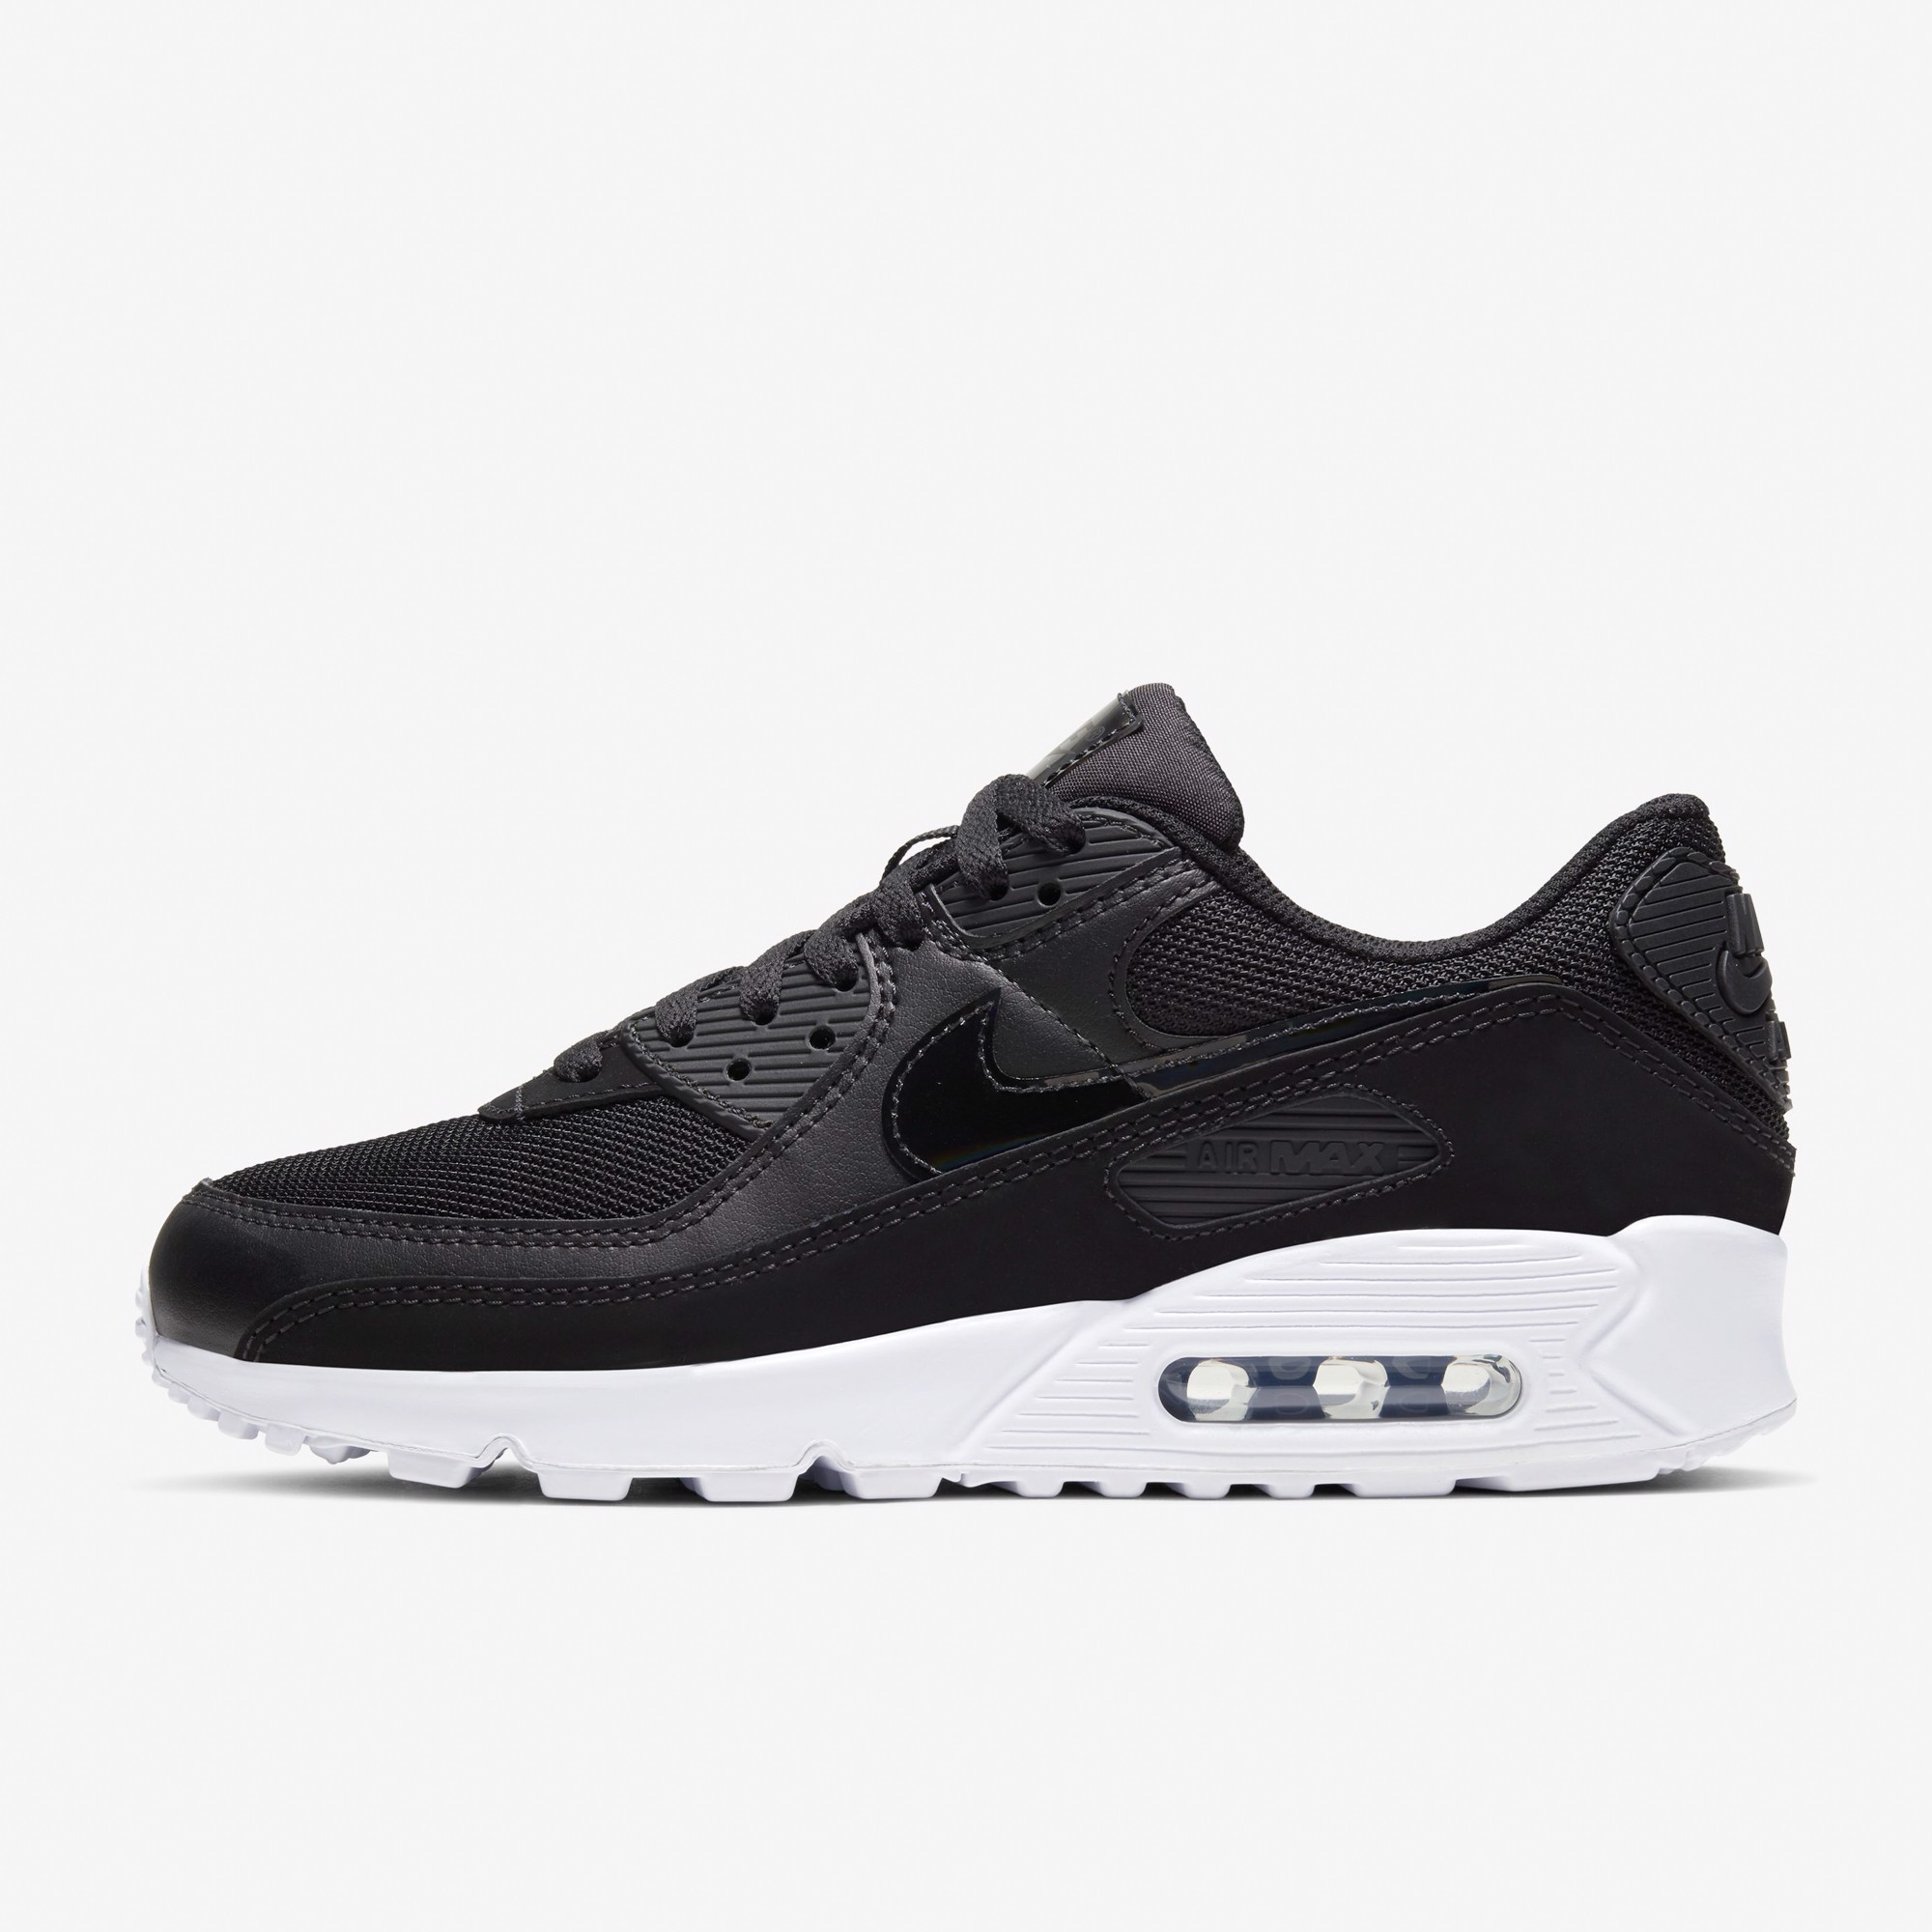 Nike Air Max 90 Twist 'Black/White'